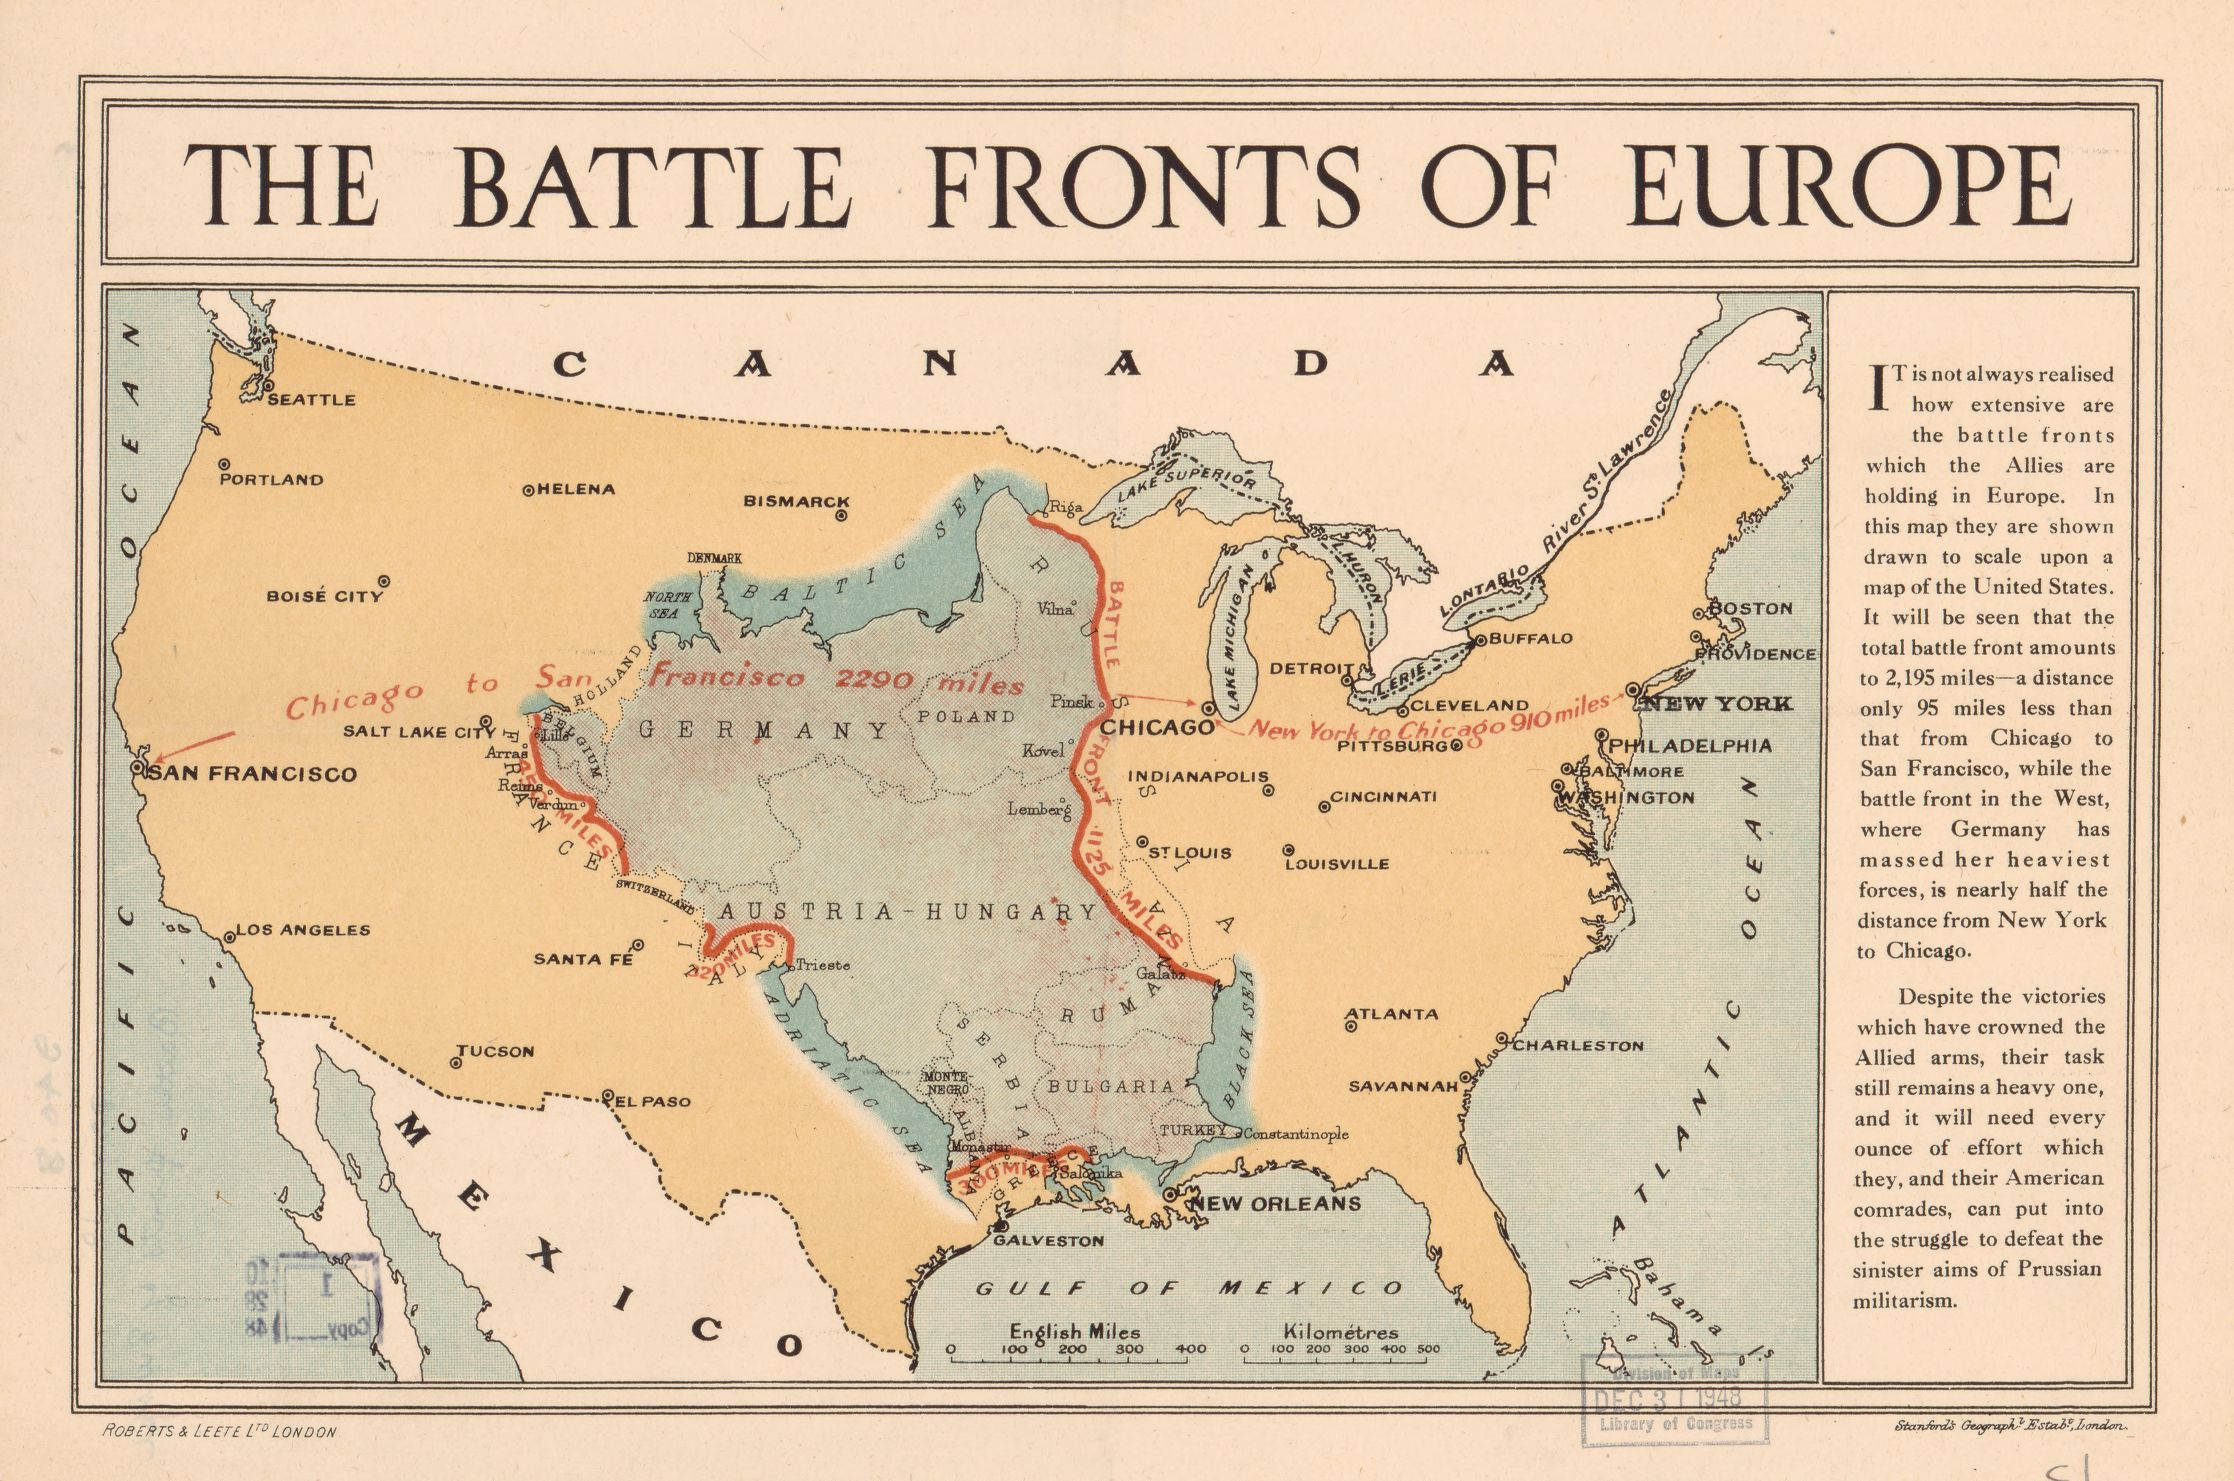 World War I Battle Fronts Of Europe Overlaid Over A Map Of